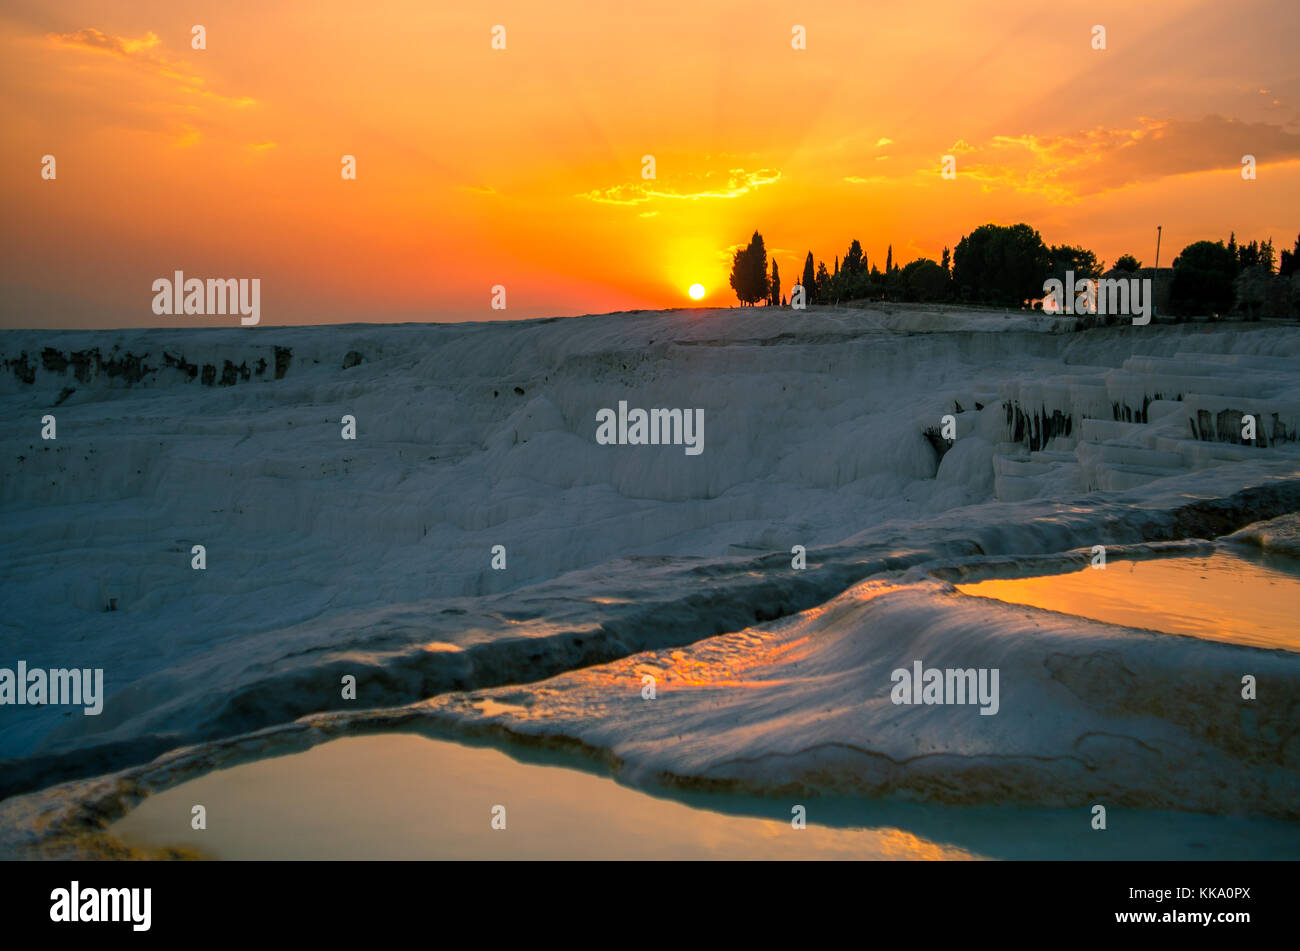 Sunset over the travertines of Pamukkale, Turkey - Stock Image